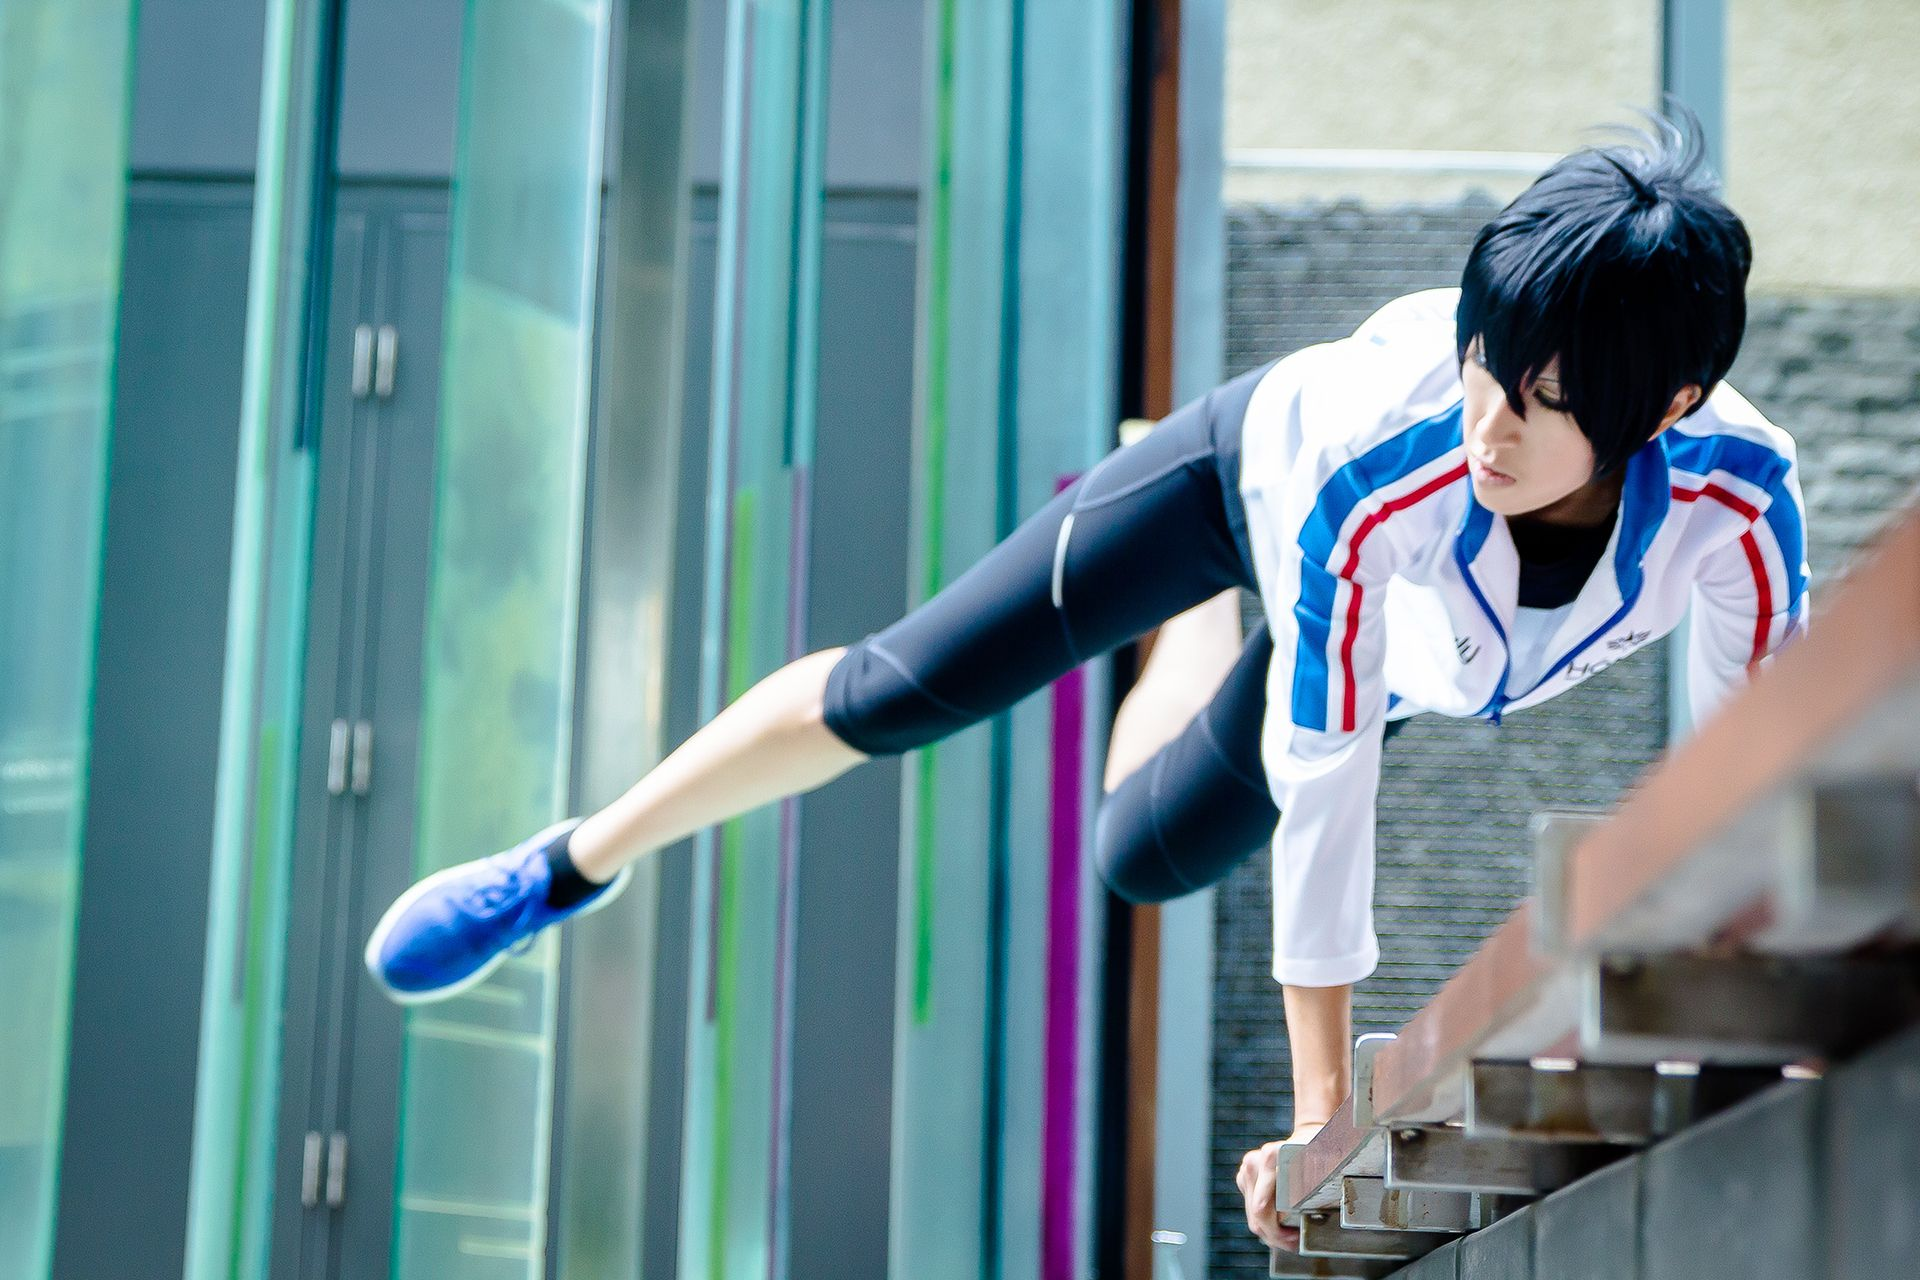 Pin by Melarin Le on Cosplay Control | Best cosplay ...